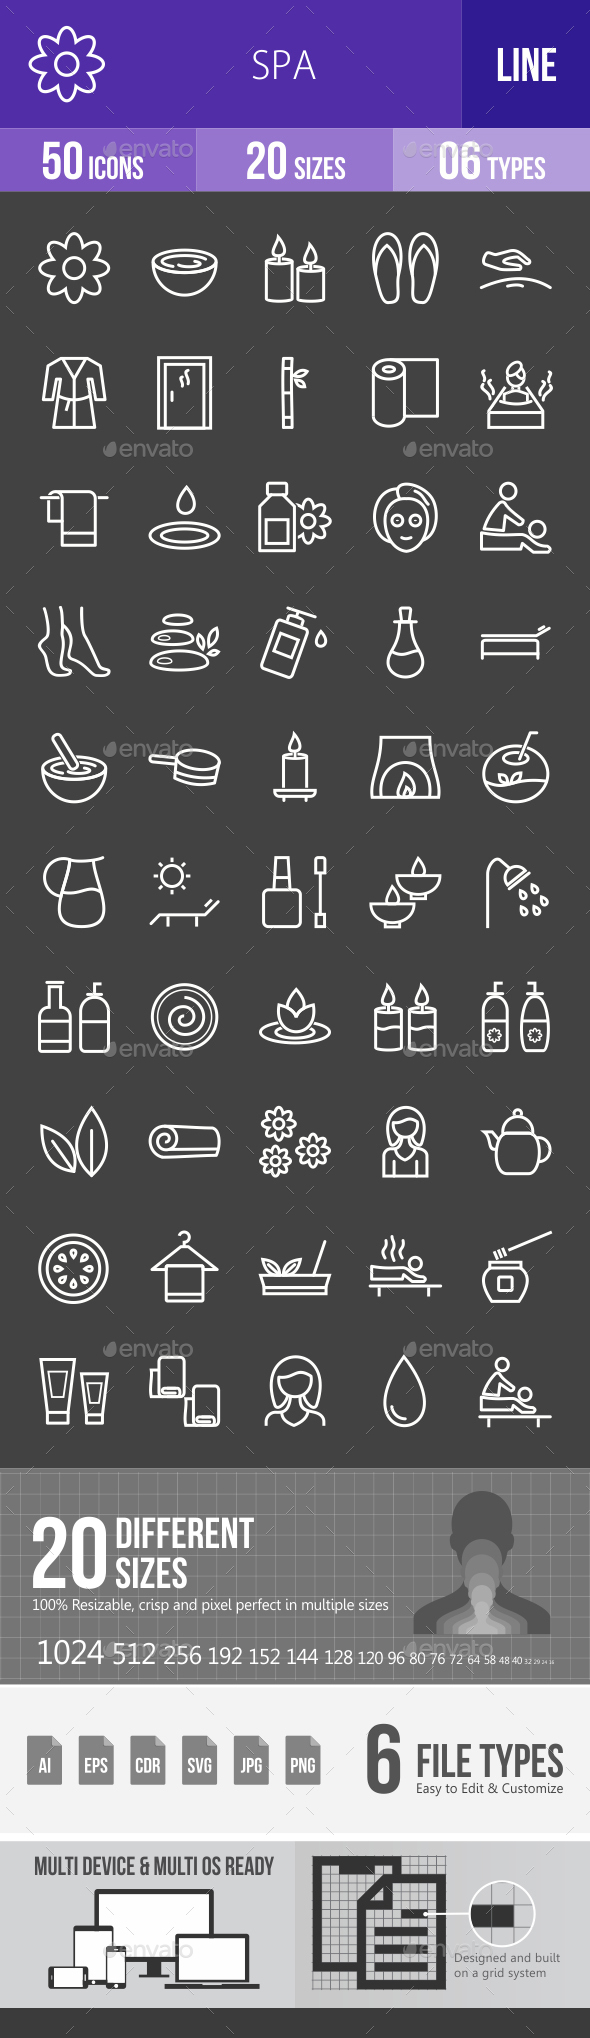 Spa Line Inverted Icons - Icons